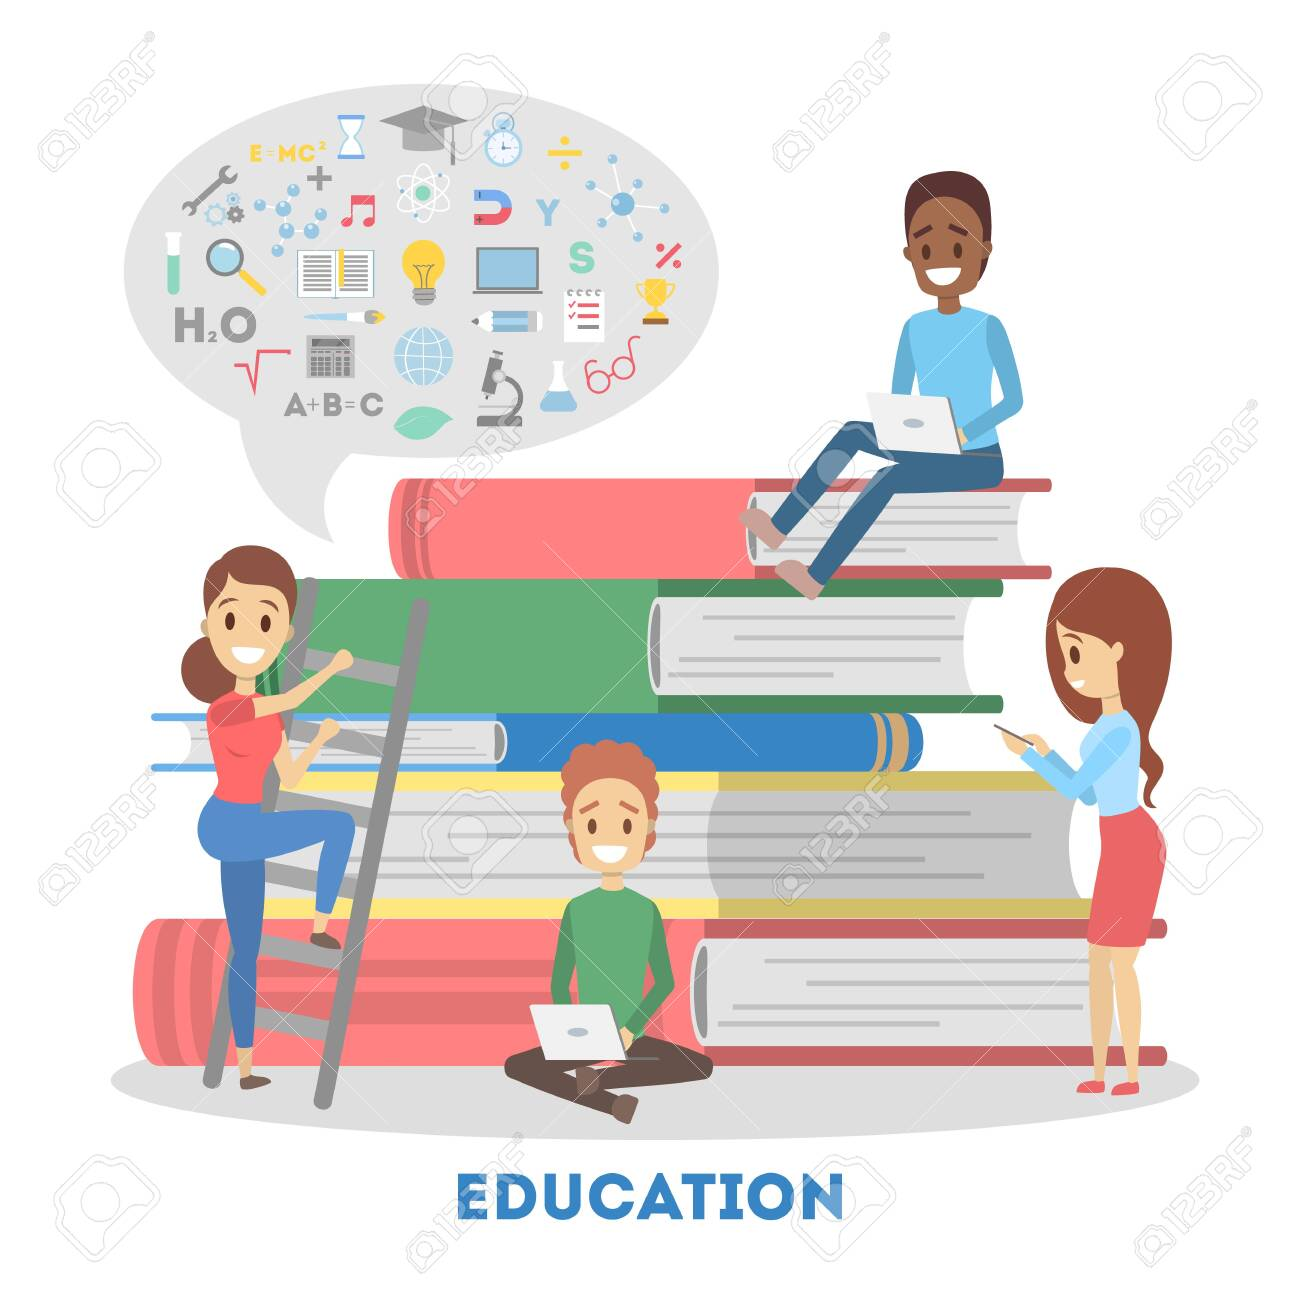 Education Web Banner E Learning And Remote Training Royalty Free Cliparts Vectors And Stock Illustration Image 118426080